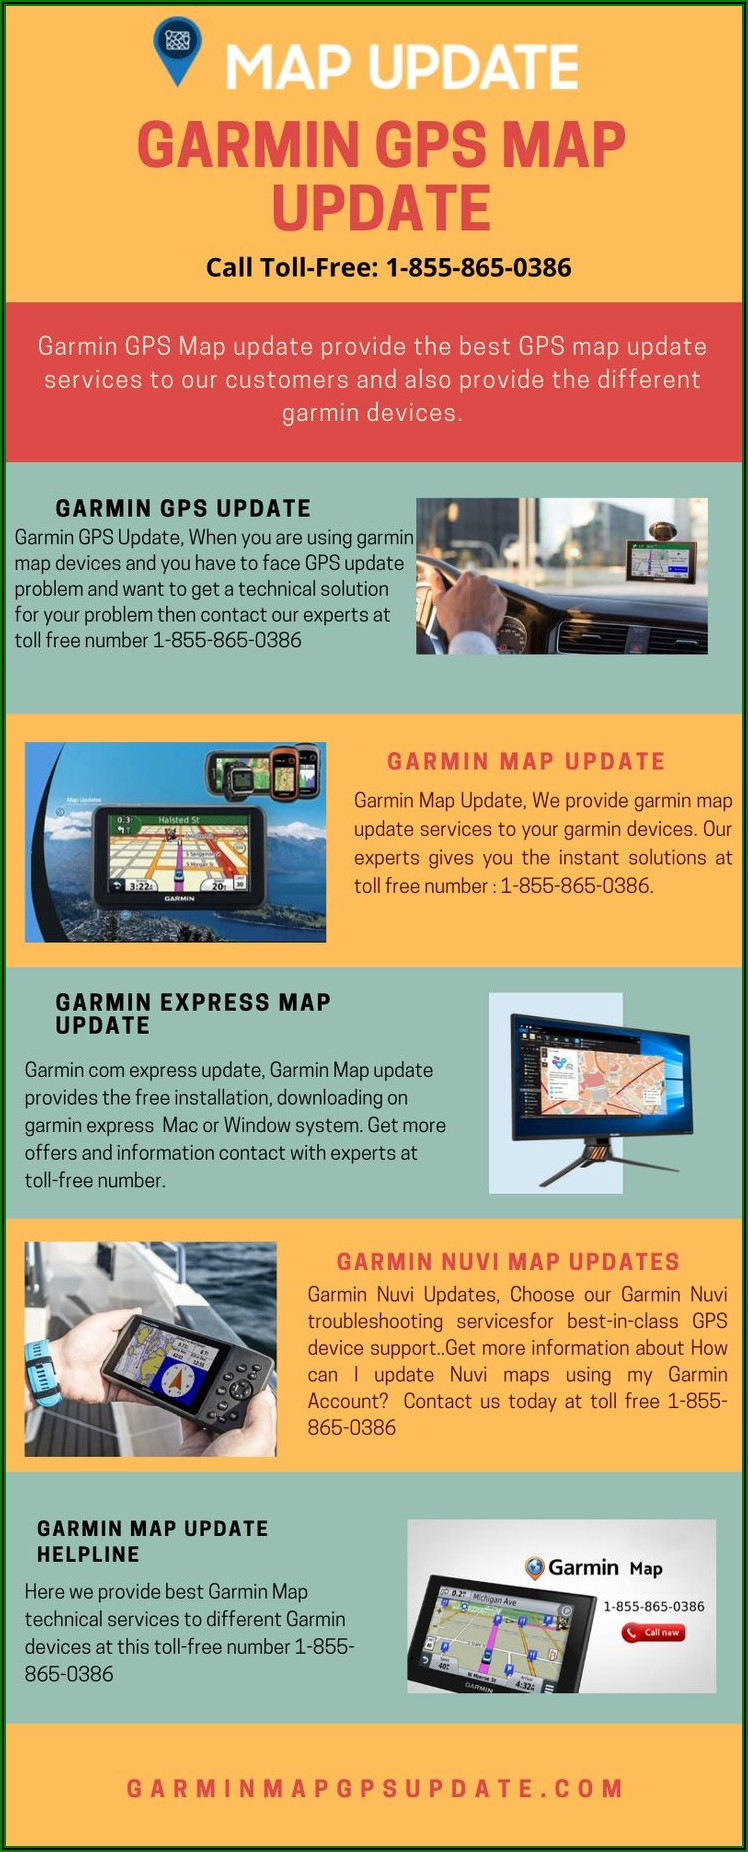 How To Update Garmin Gps Maps For Free